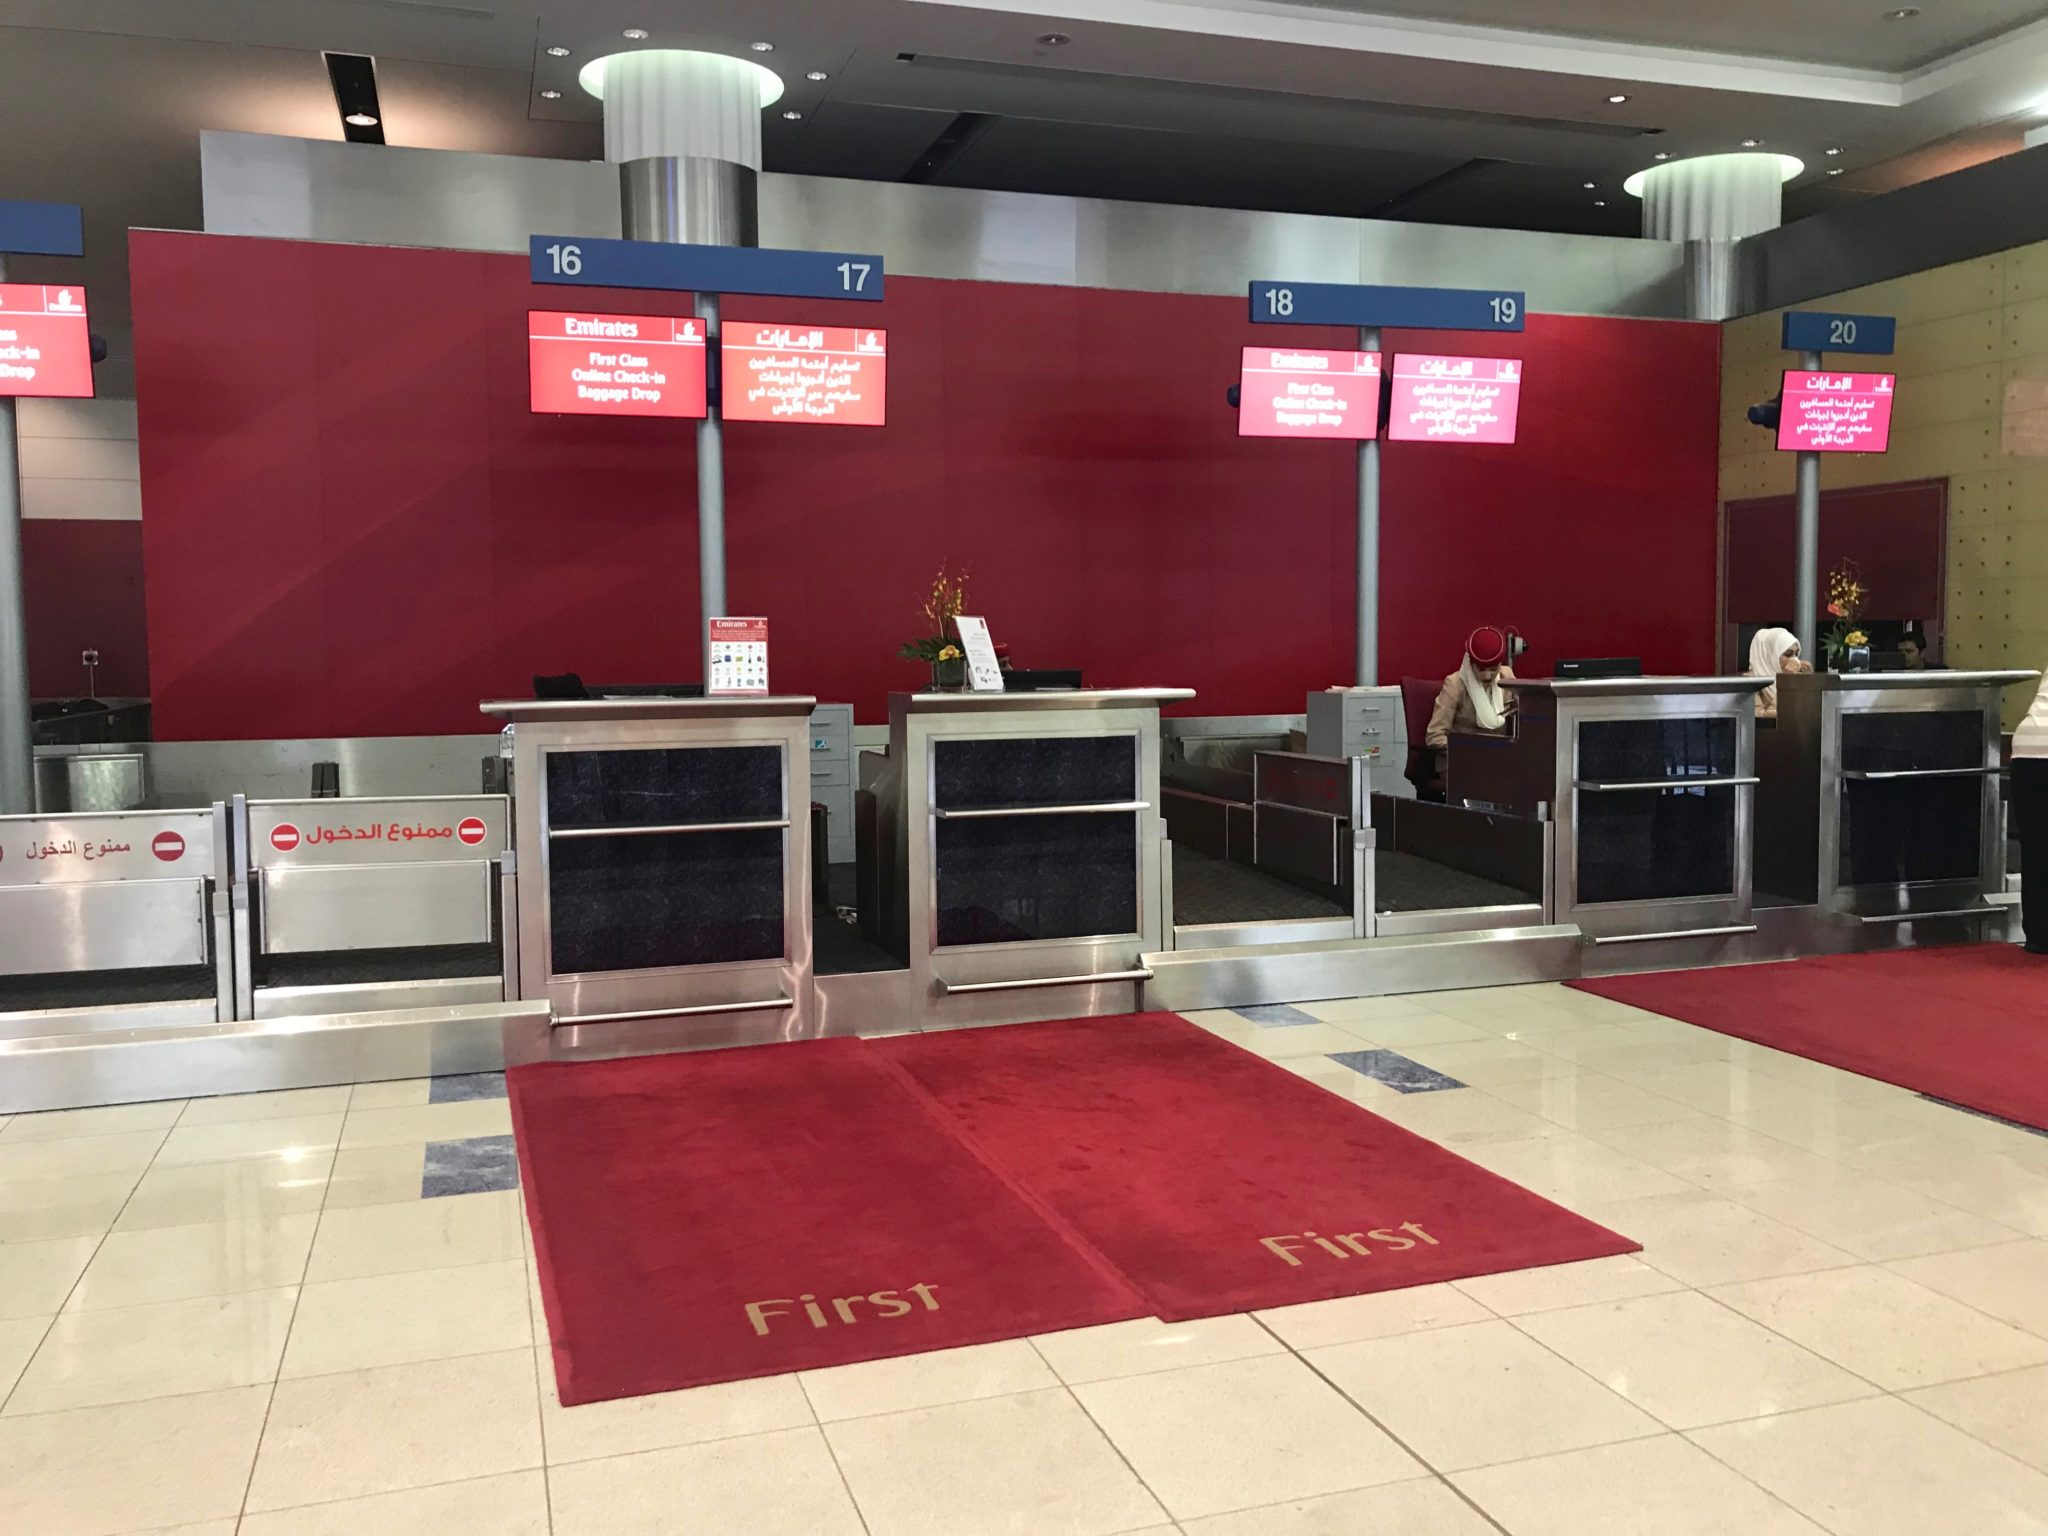 Emirates First Class Priority Check In Area